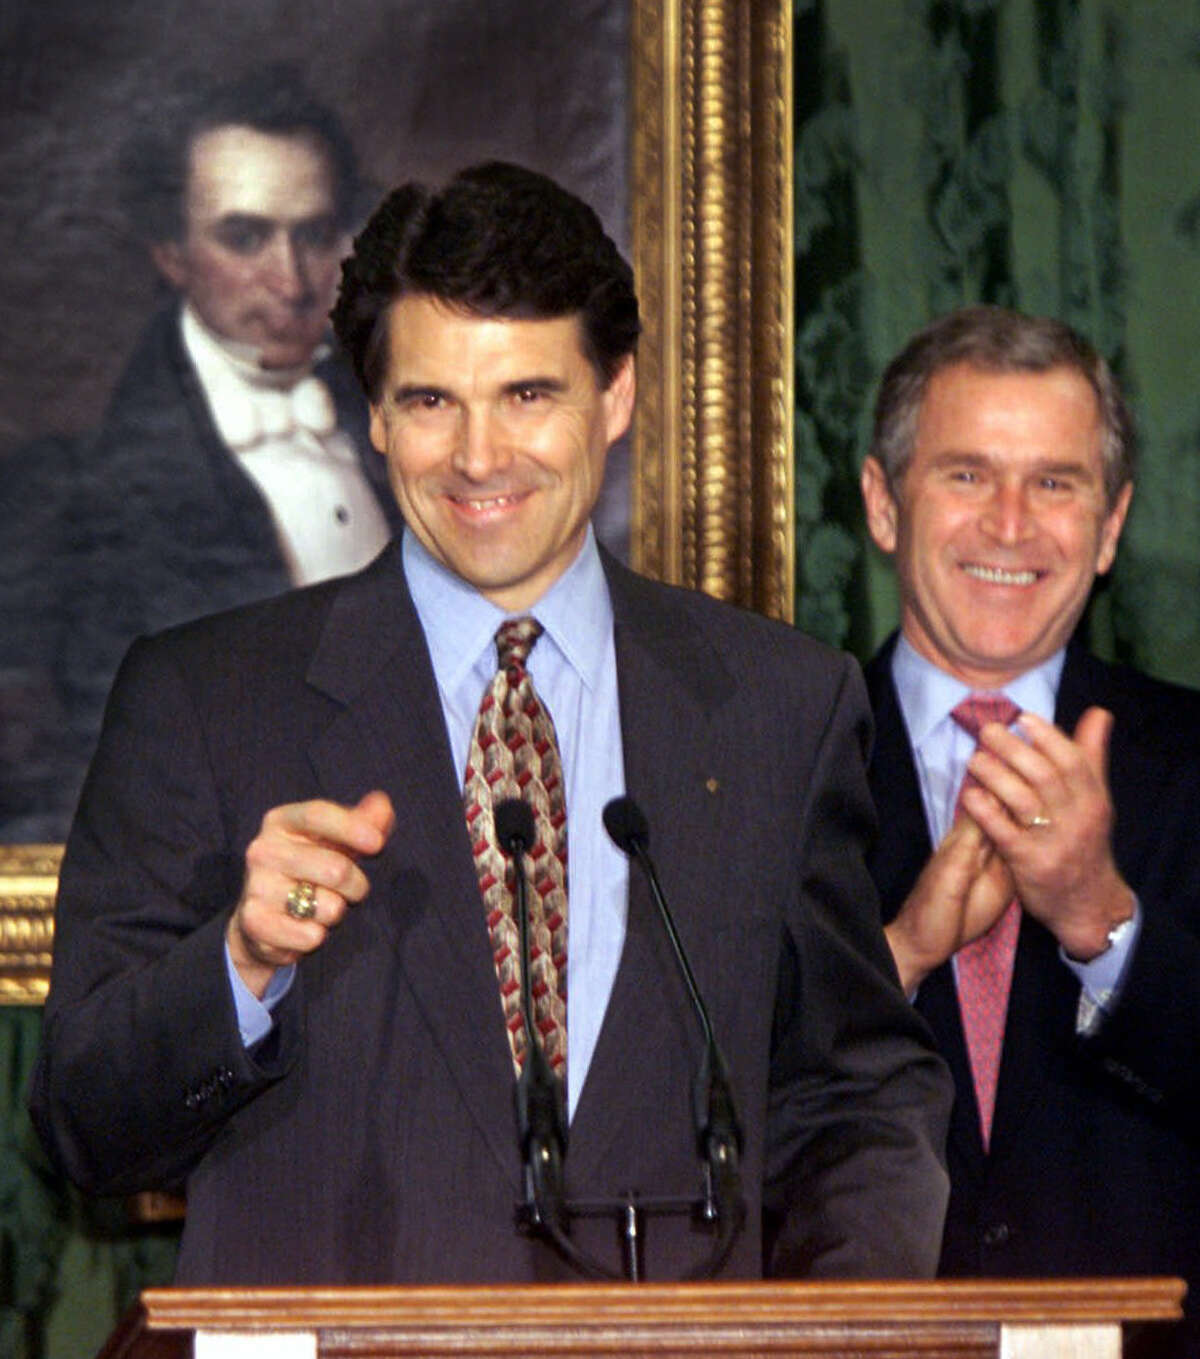 With President-elect George W. Bush beside him, Rick Perry is sworn in as Texas governor in 2000.